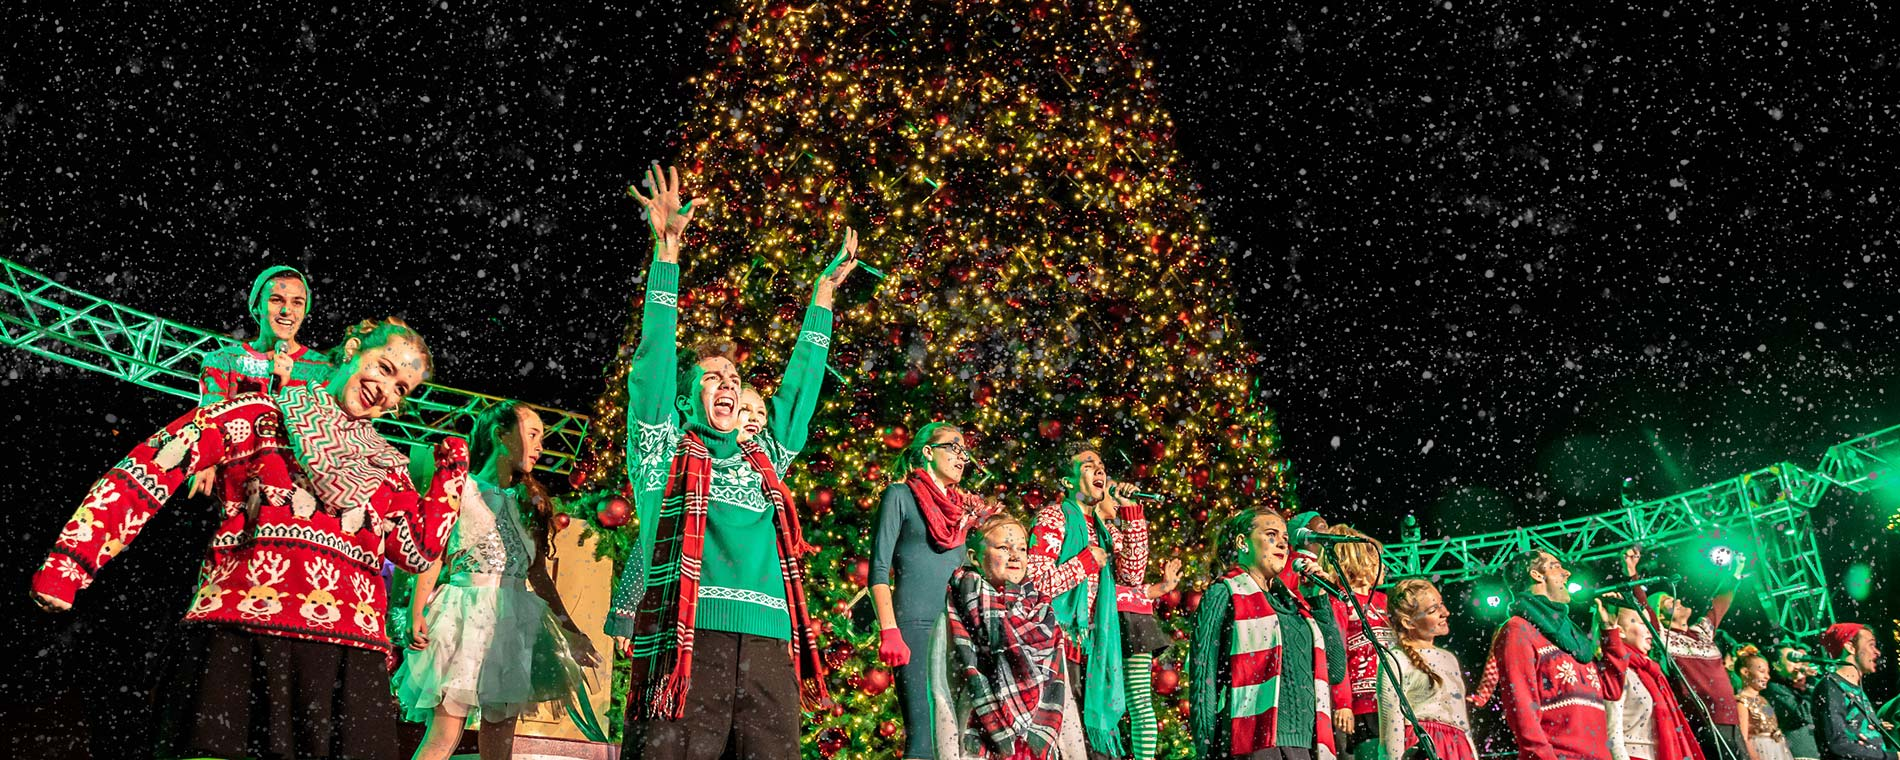 Live Performance at Worlds of Fun's WinterFest Holiday Event